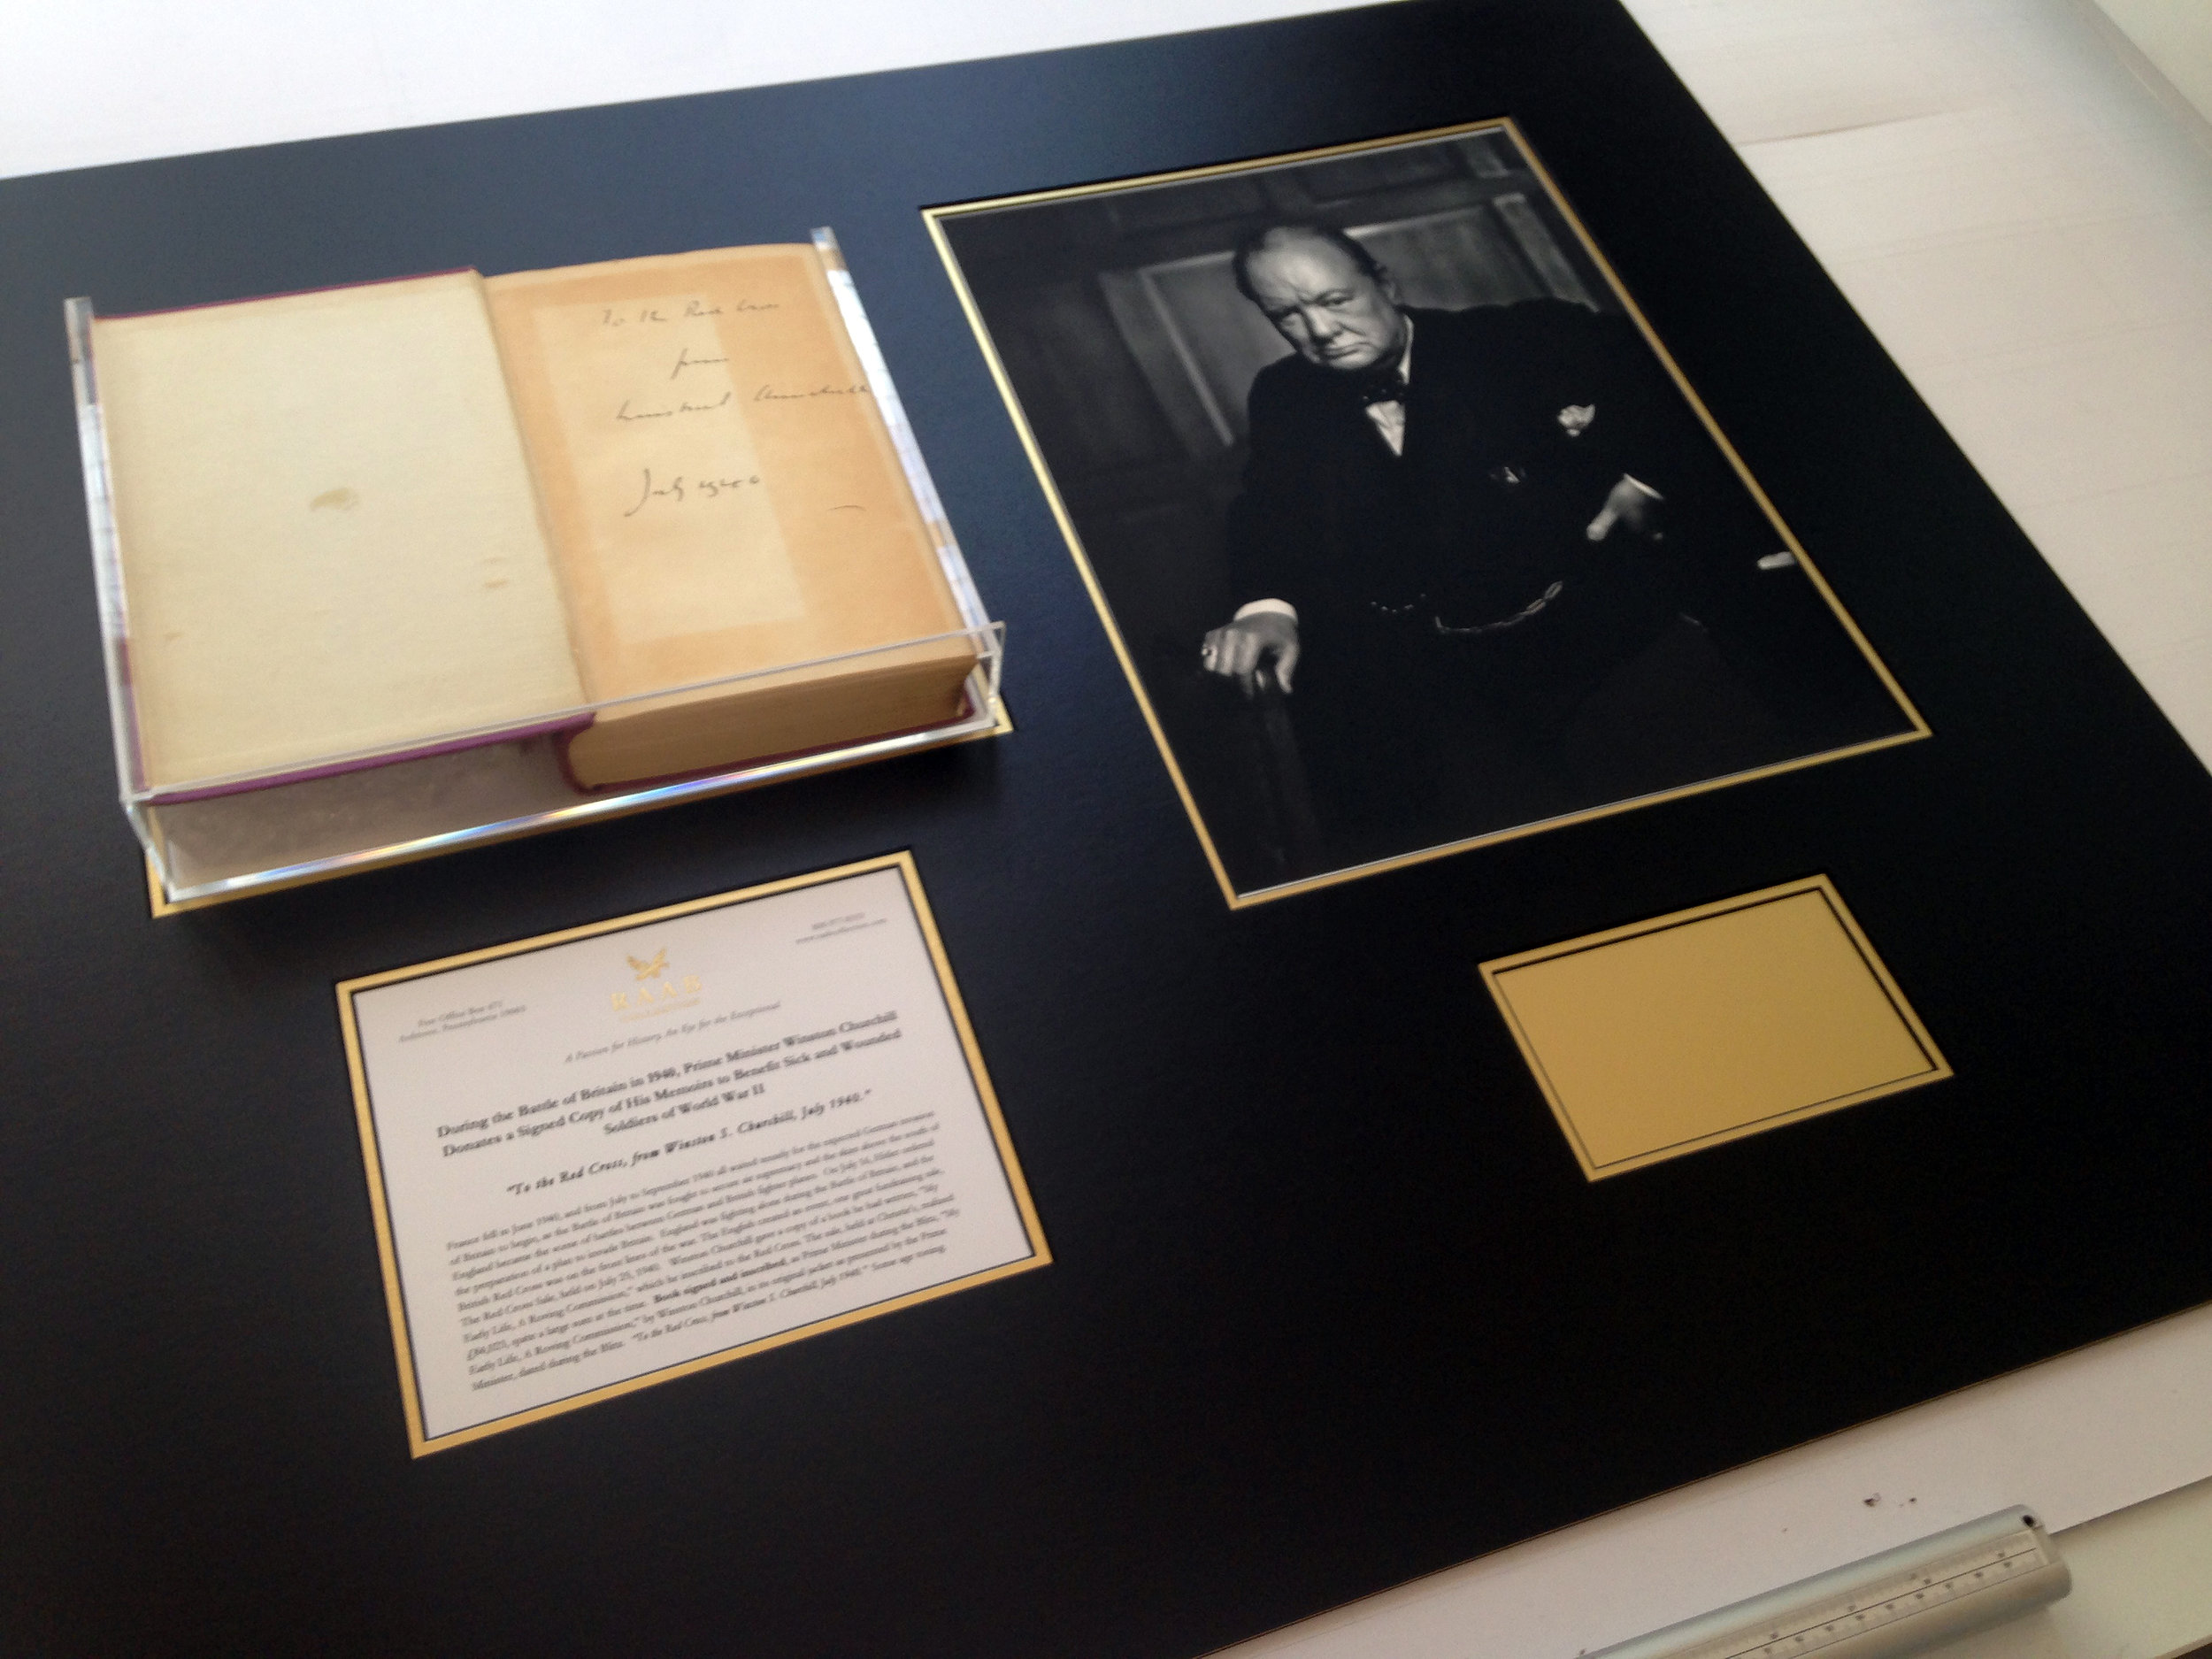 Signed autobiography of Winston Churchill.